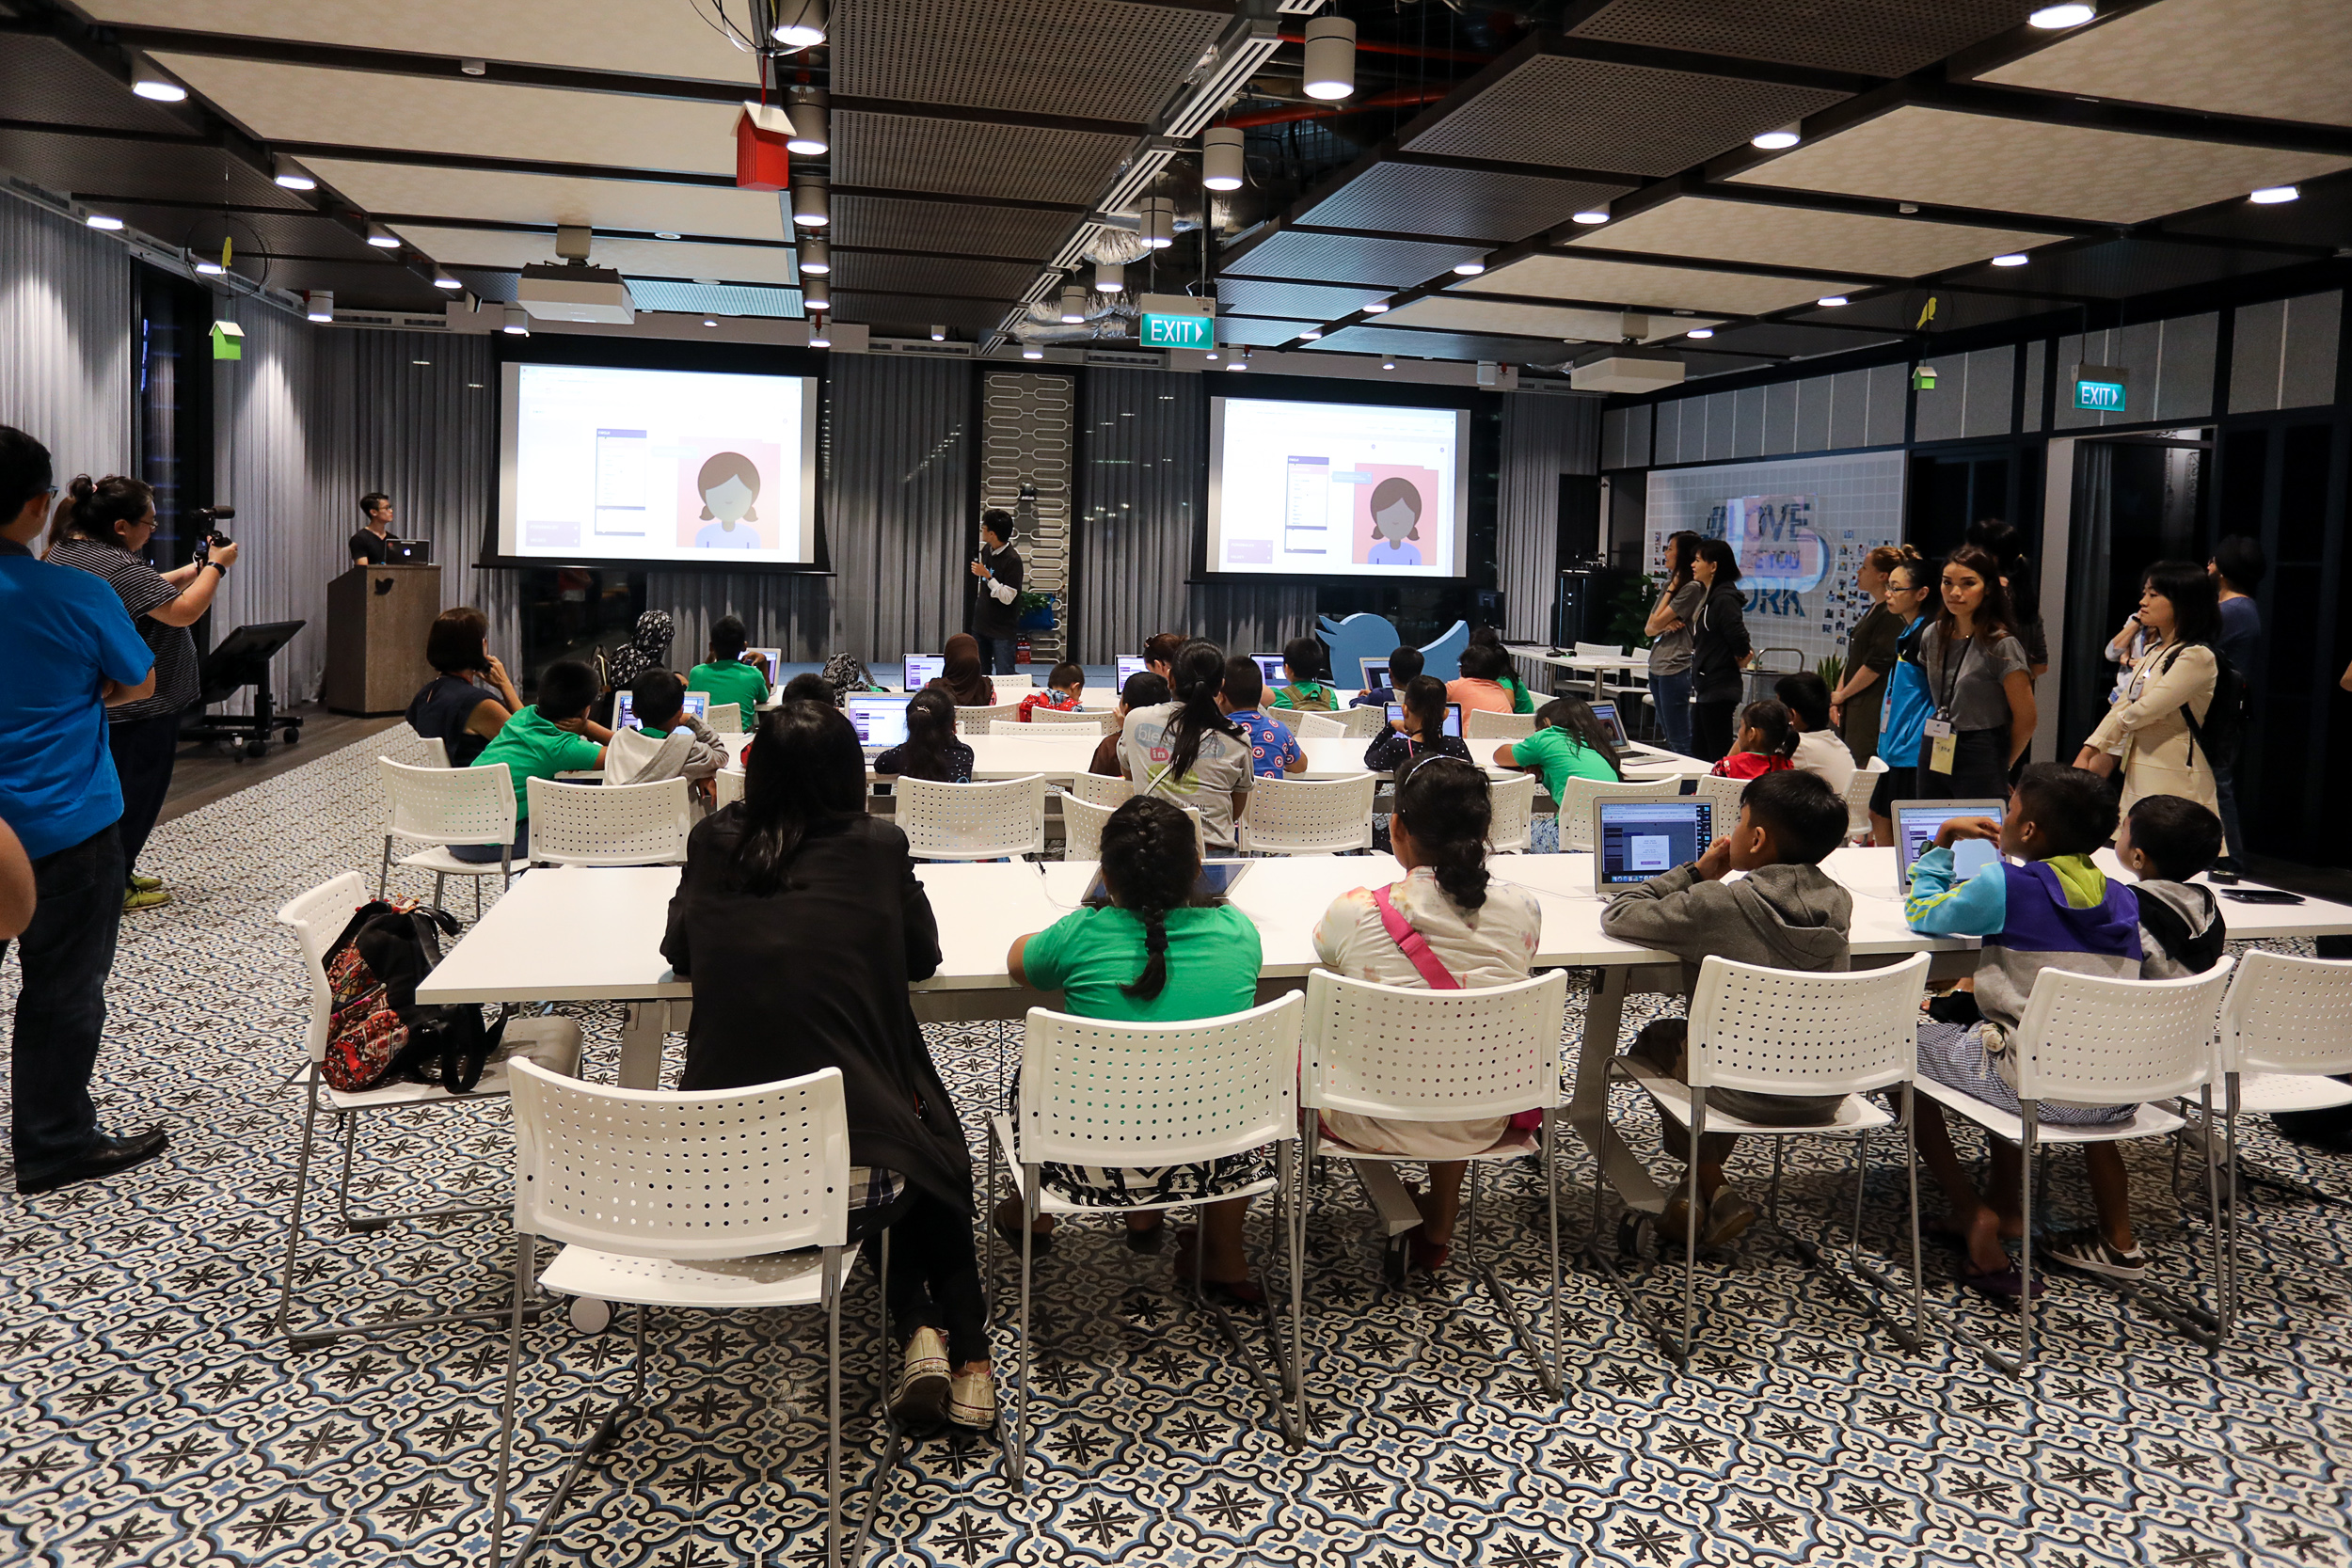 A highly engaging private tour and workshop at Twitter, Singapore!